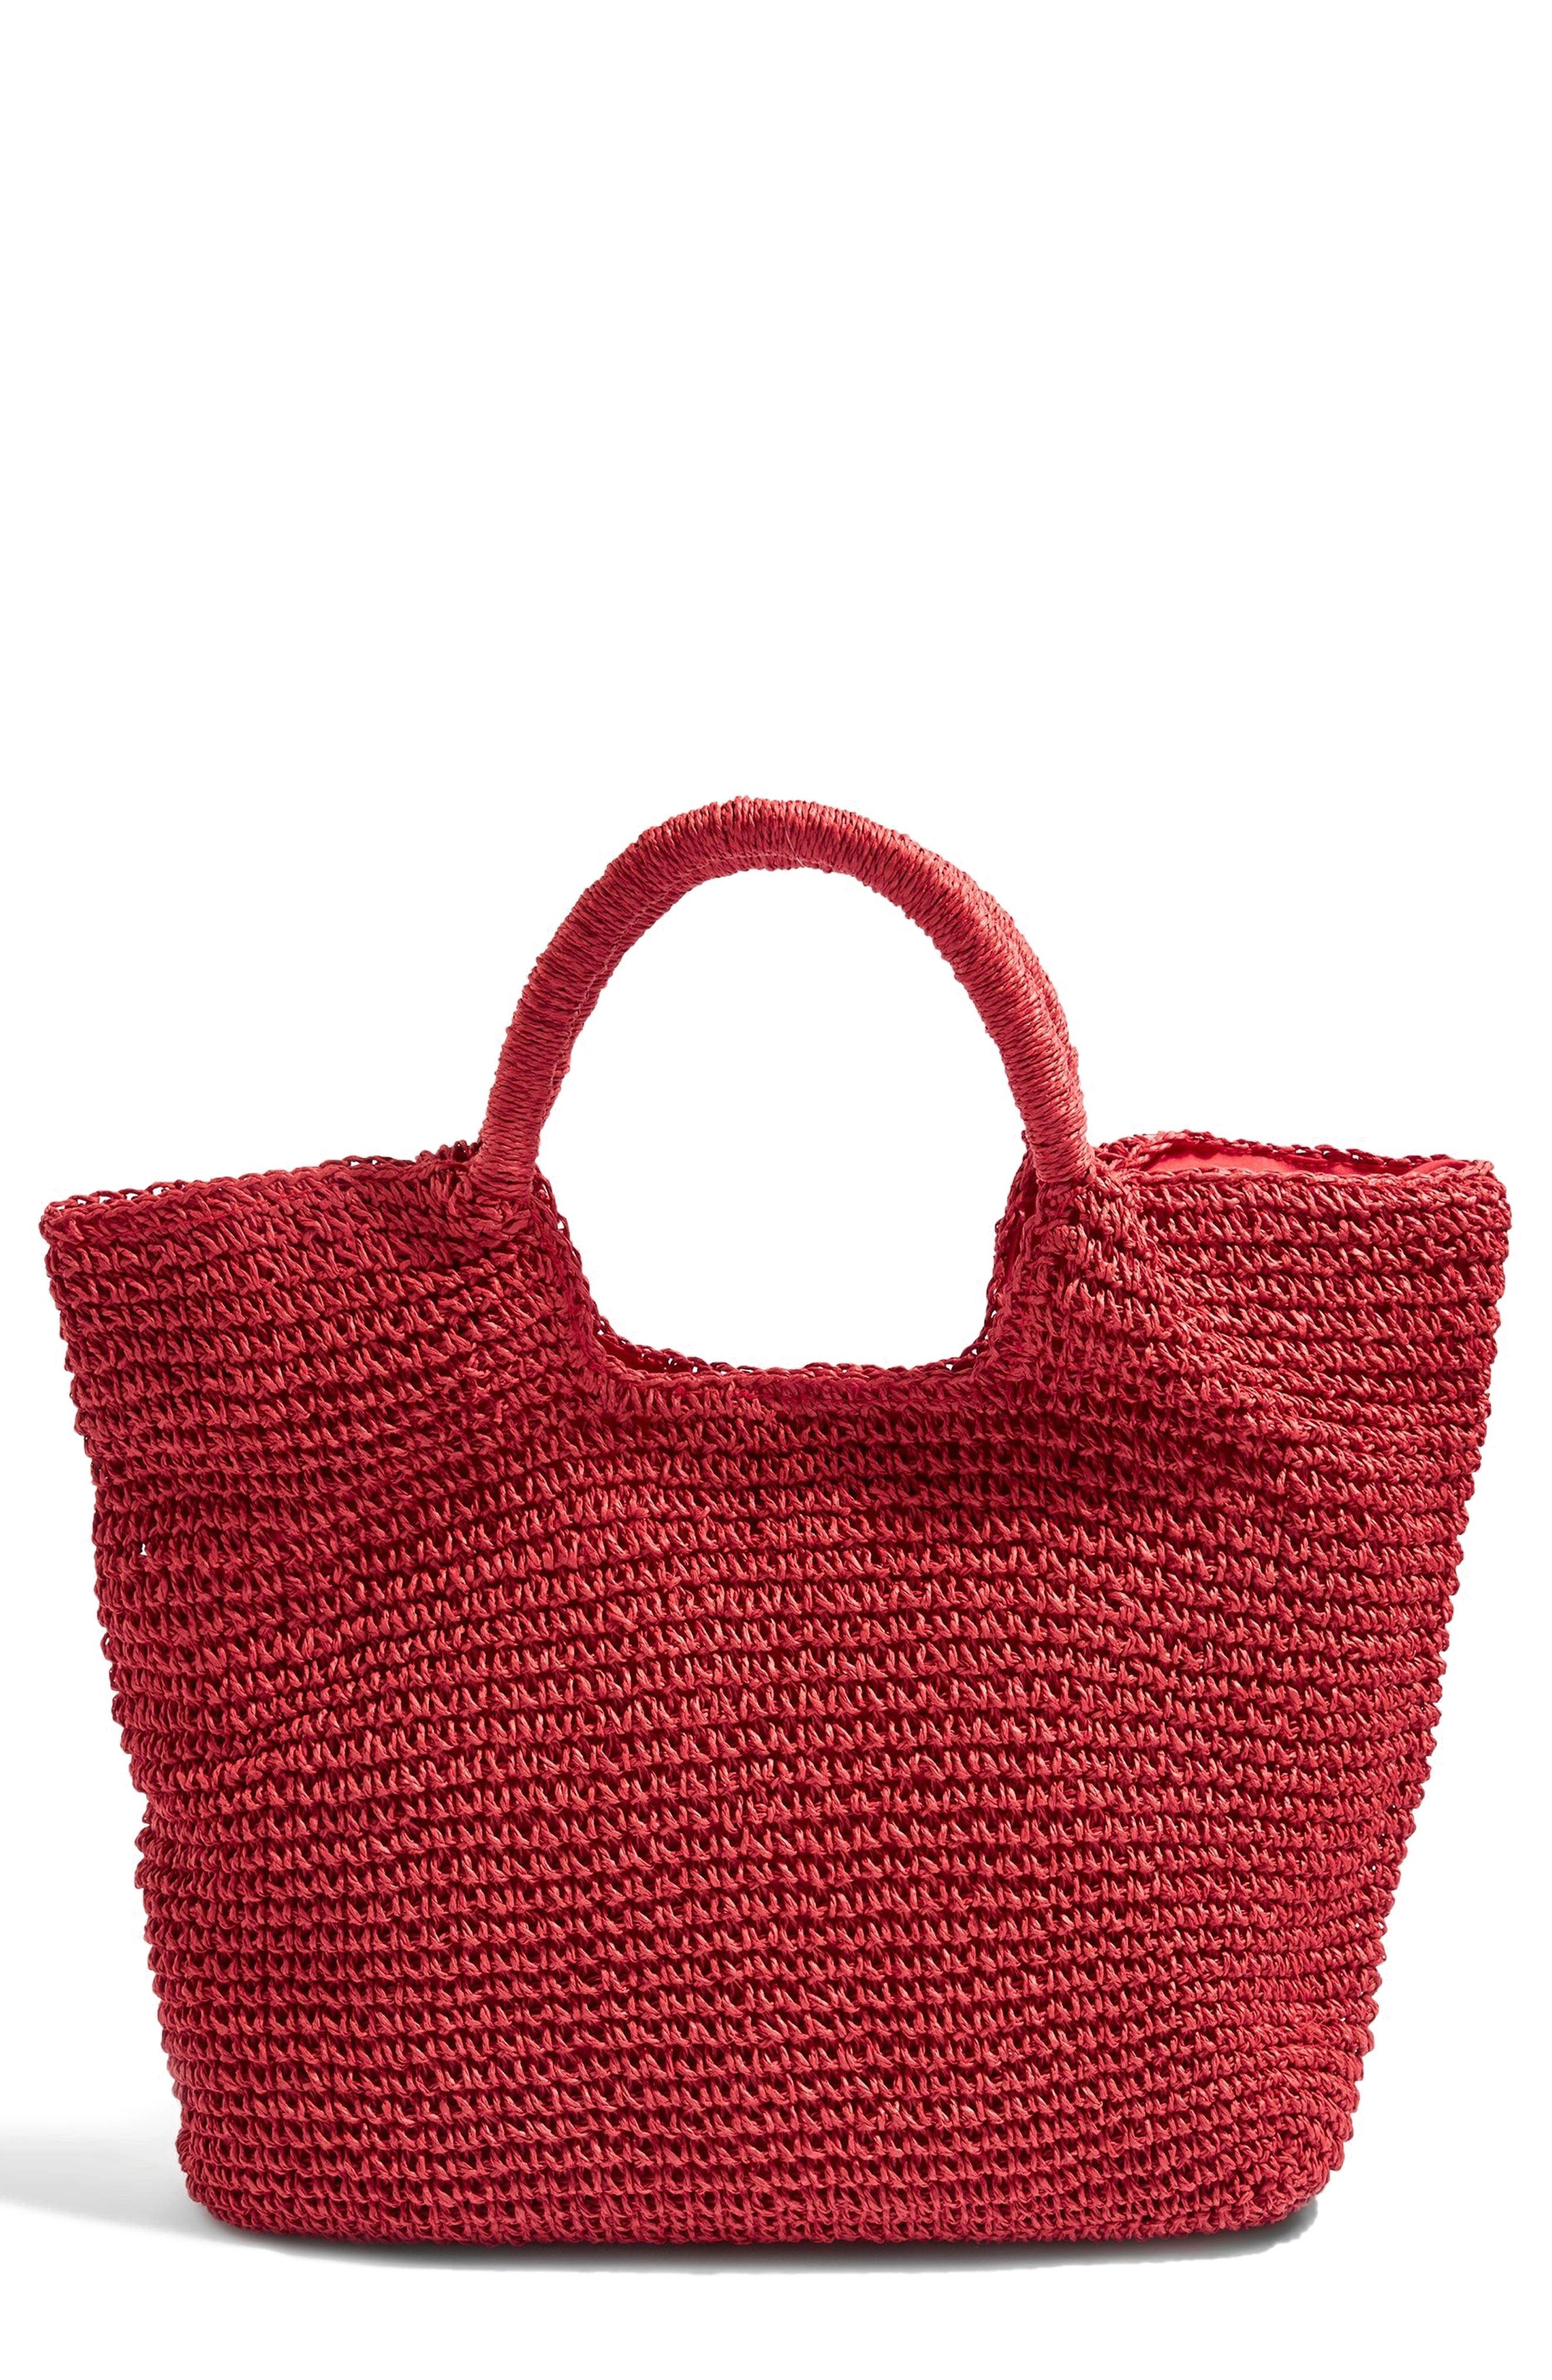 Brighty Straw Tote Bag,                             Main thumbnail 1, color,                             Red